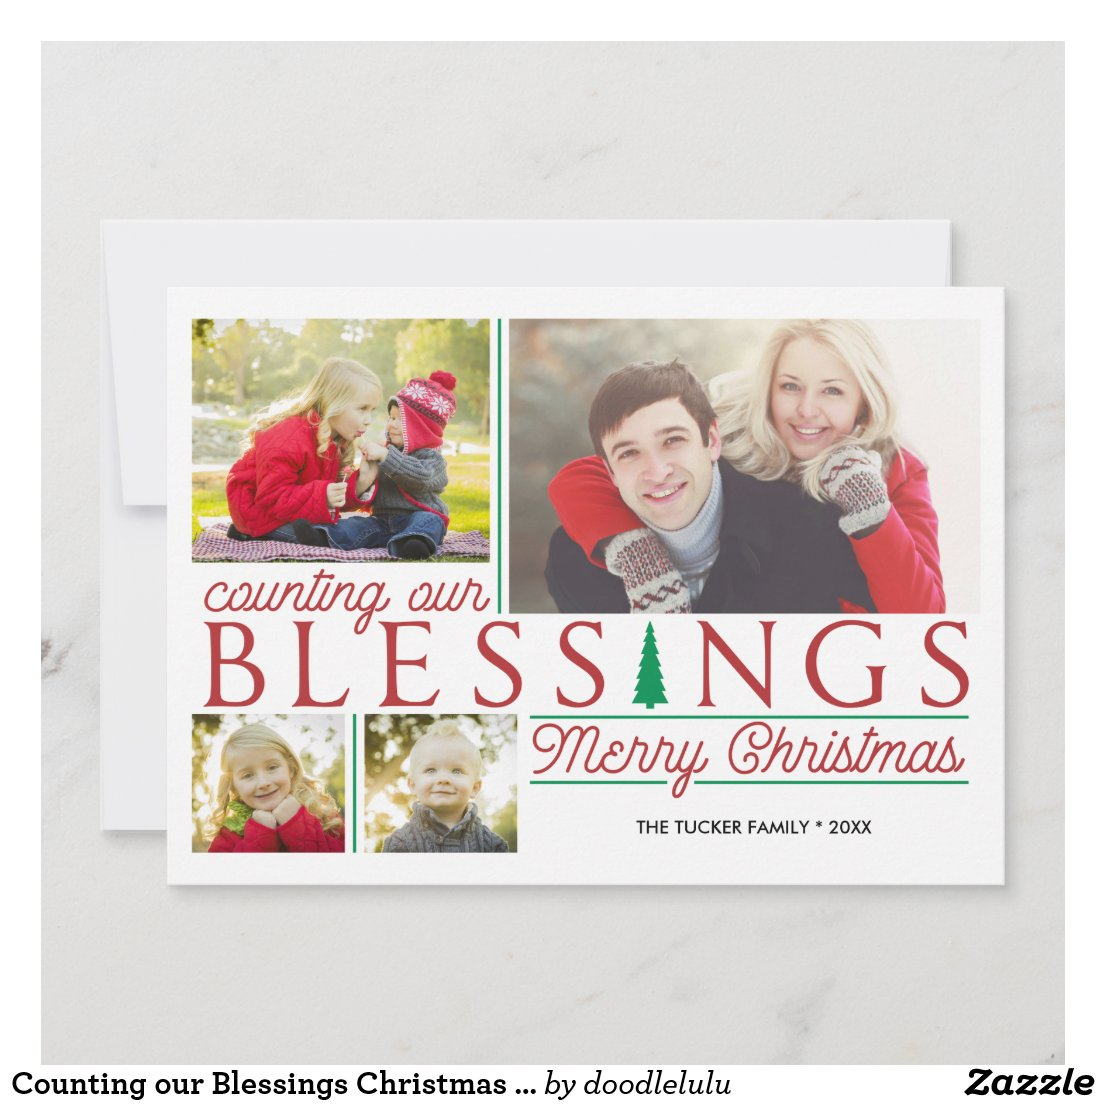 Counting our Blessings Christmas Photo Holiday Card